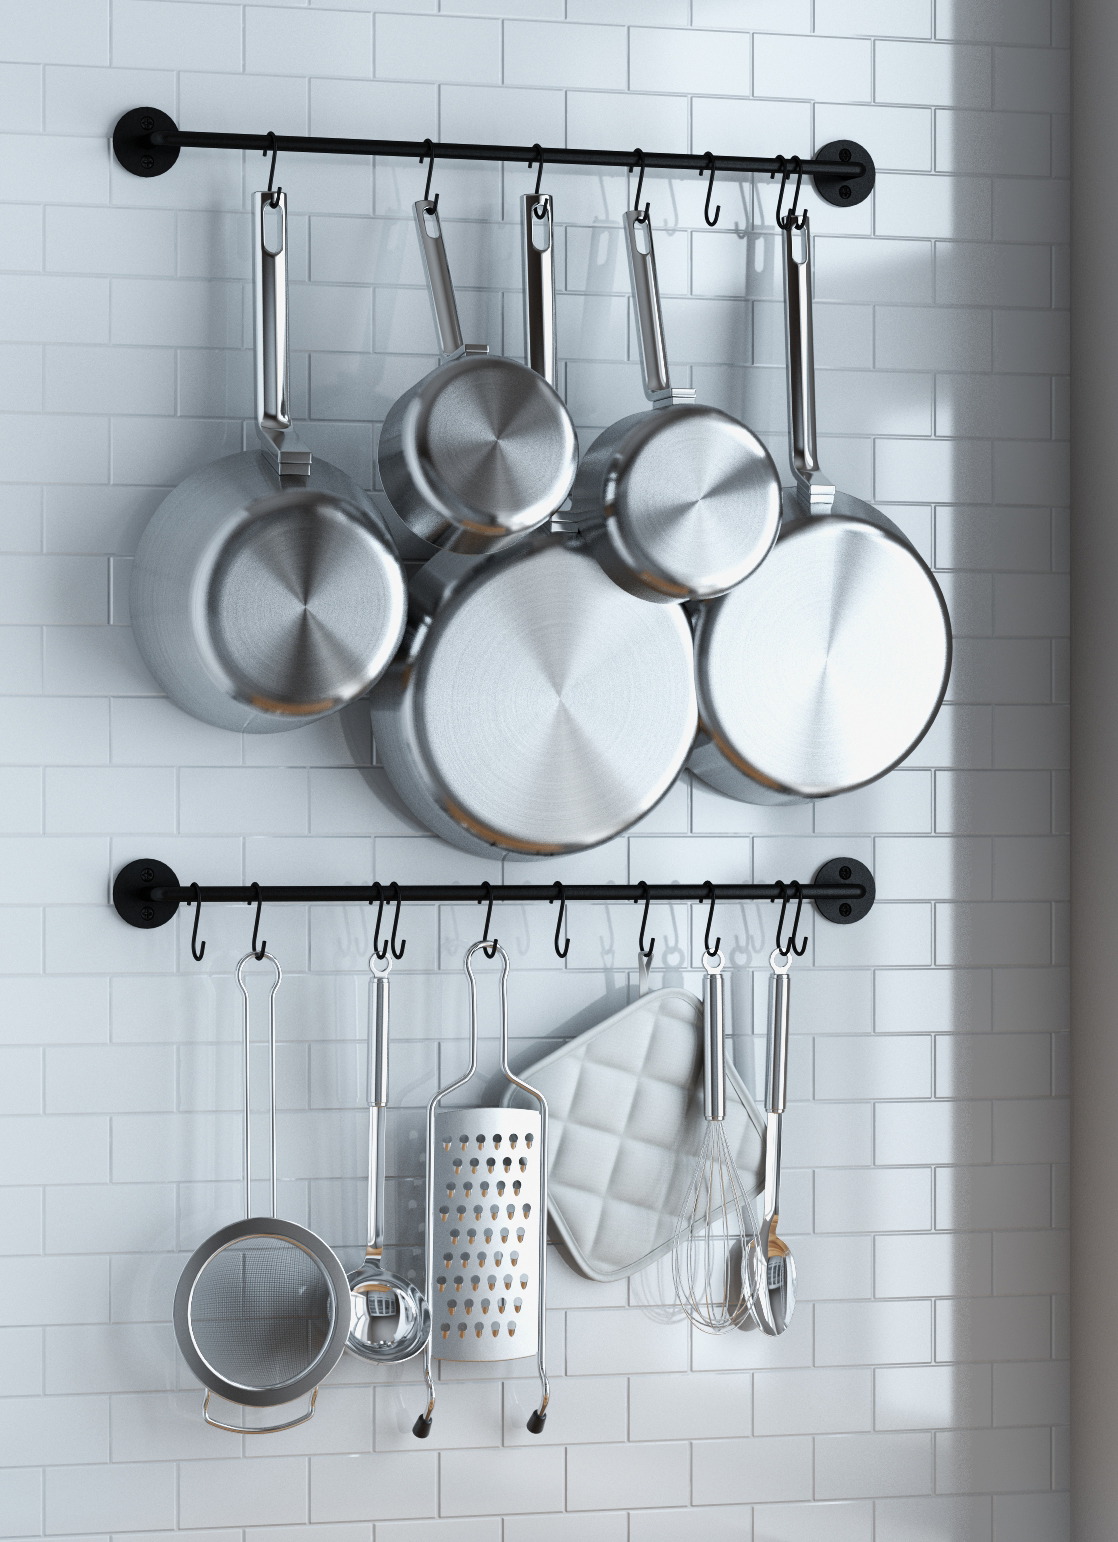 Kitchen Utensil Rack Wall Mounted - Home Design Ideas and Pictures